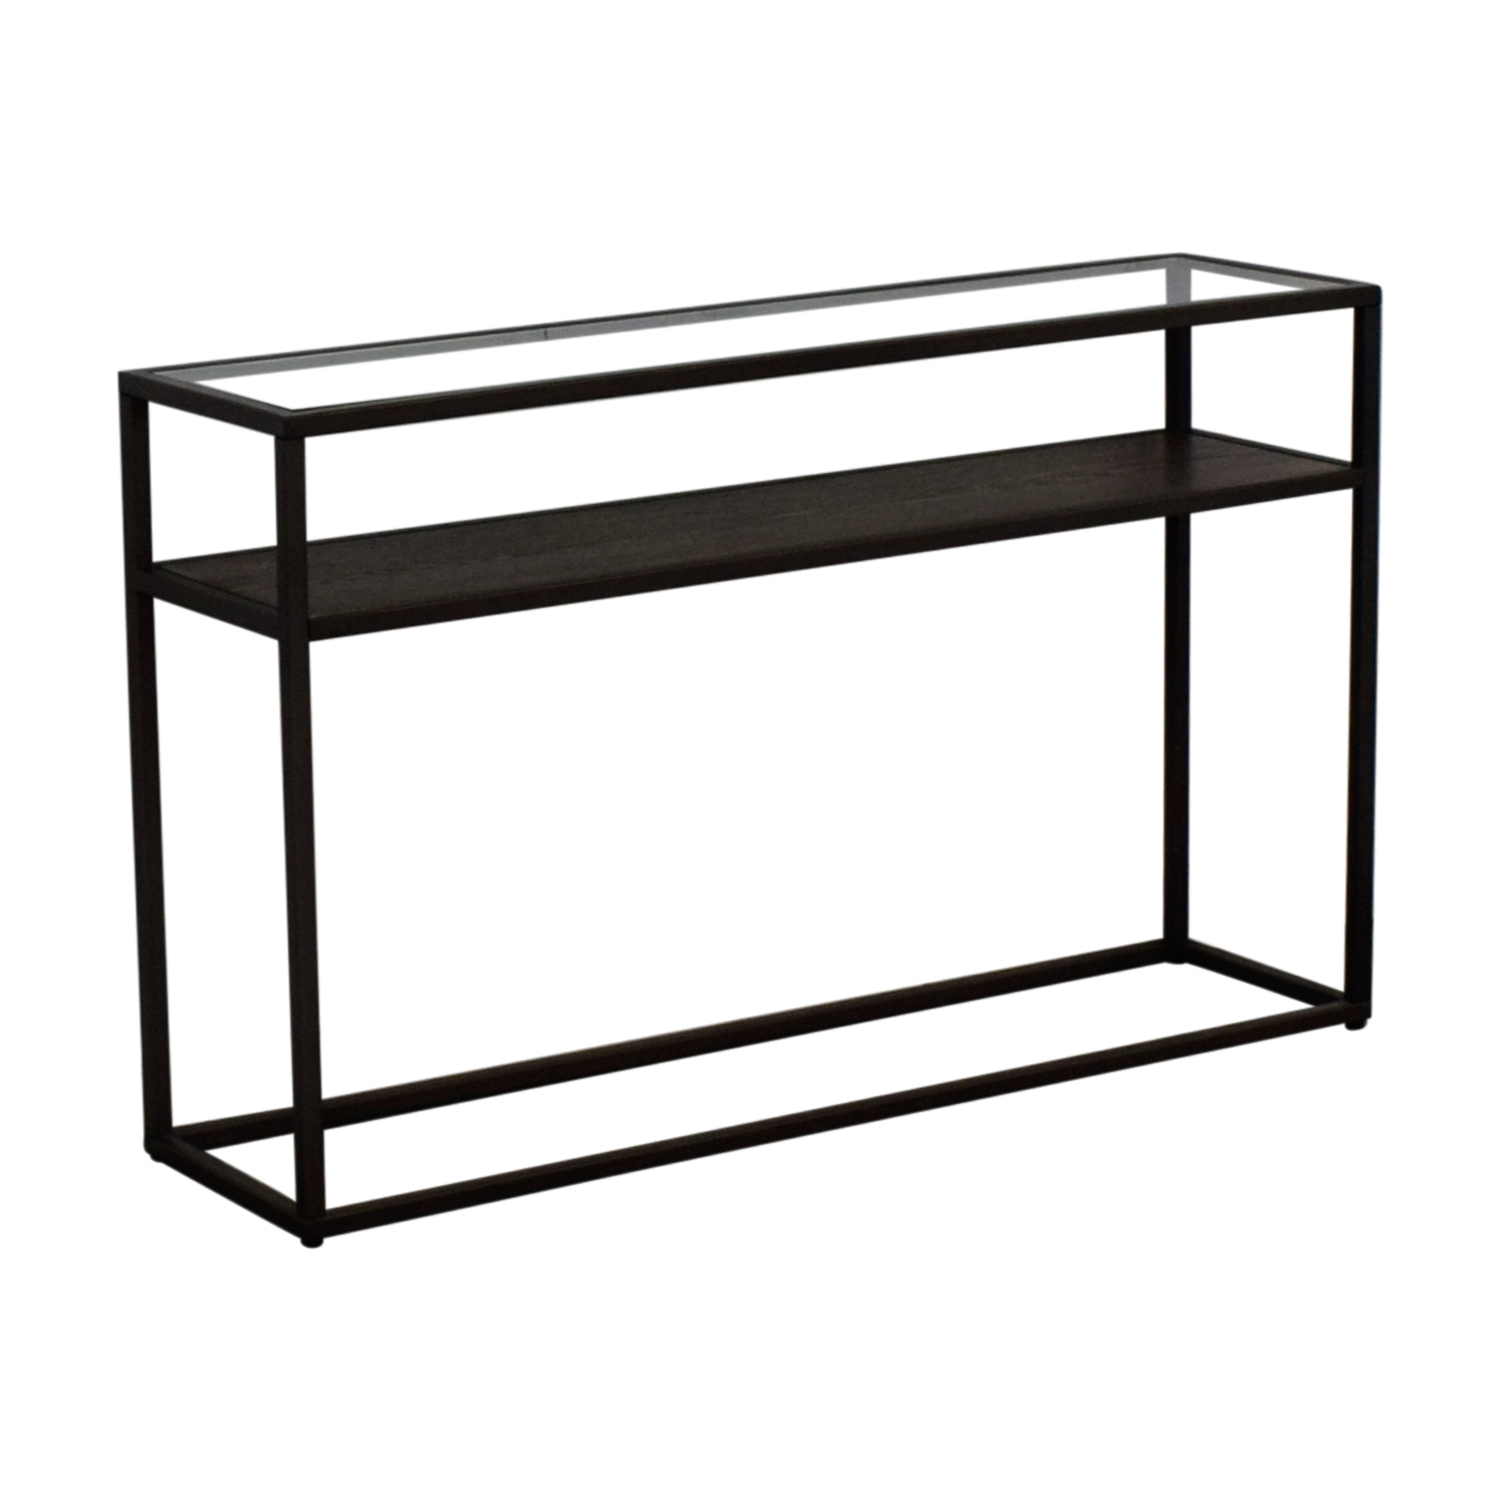 Crate & Barrel Switch Glass Wood And Metal Console Table Pertaining To Switch Console Tables (View 7 of 30)